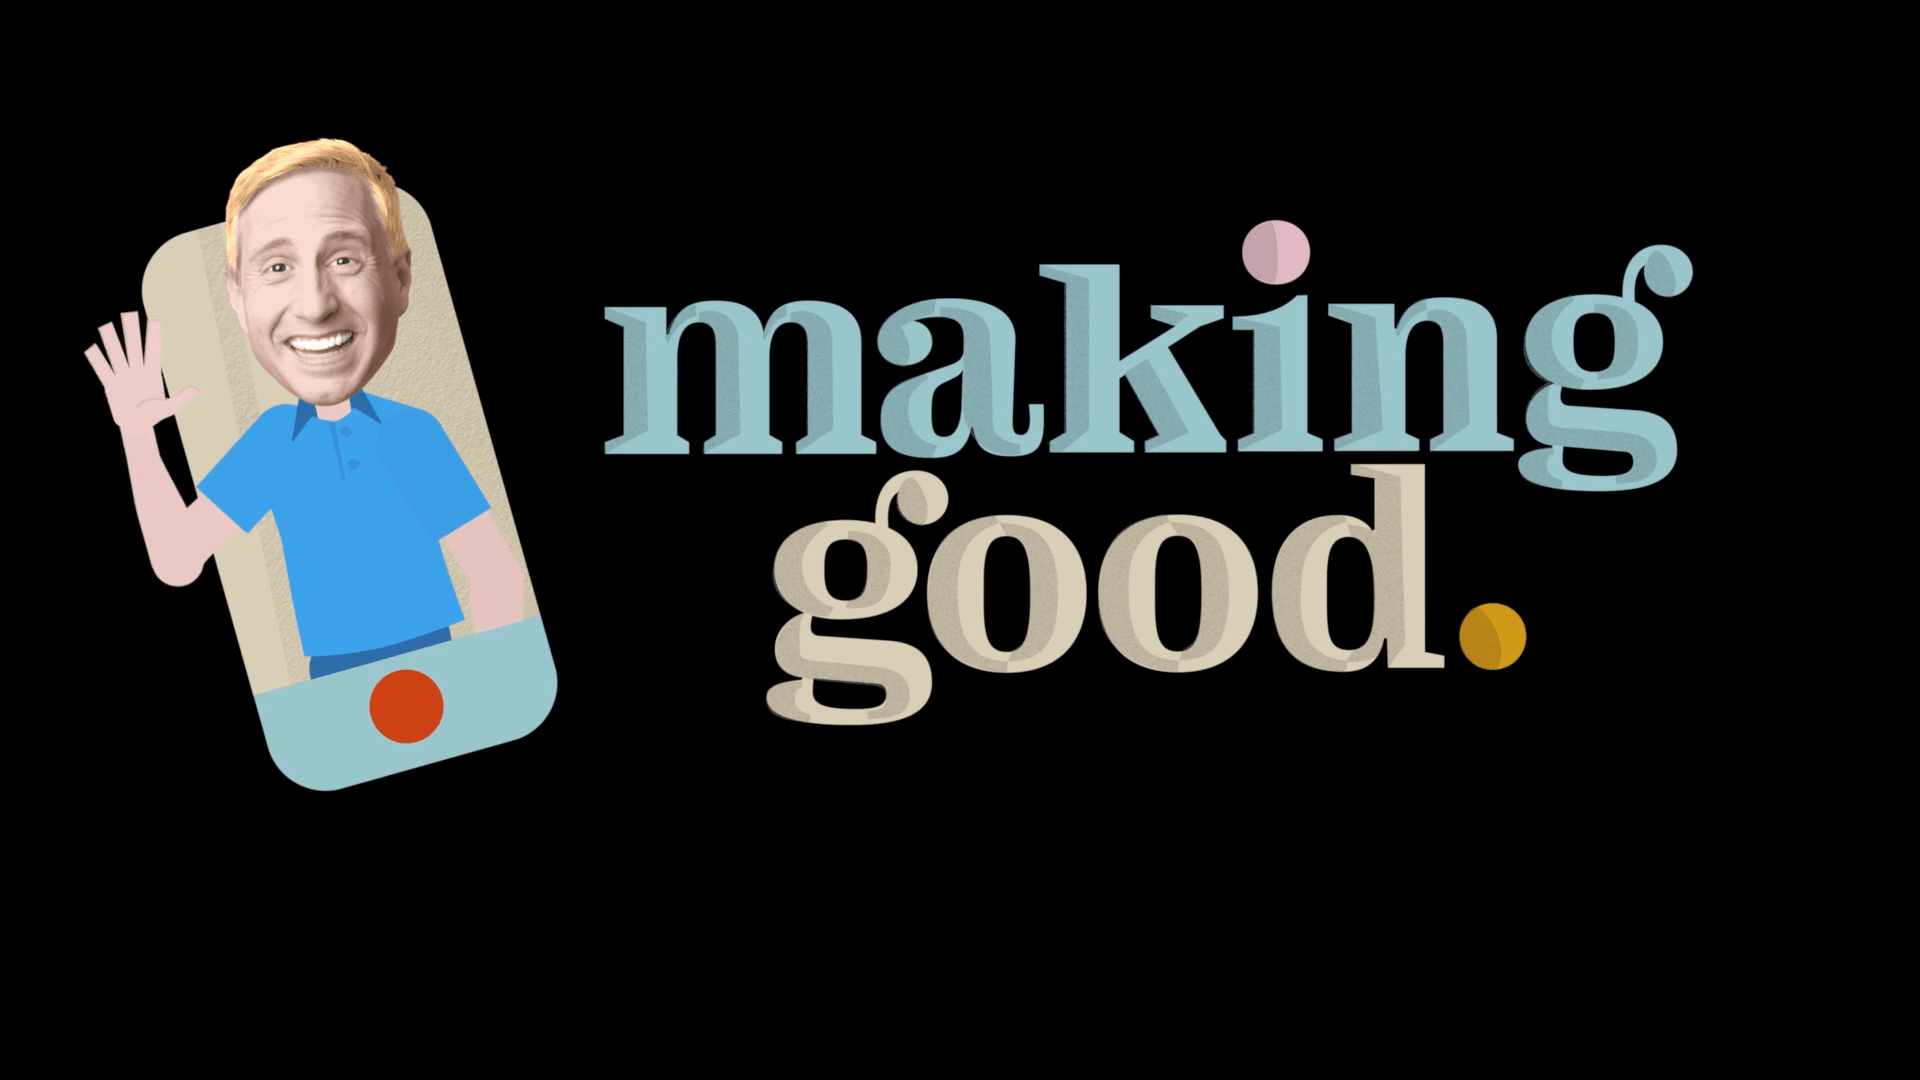 Making Good features host Kirby Heybourne as he visits different non-profit groups across the nation and put himself to the test trying out odd jobs.